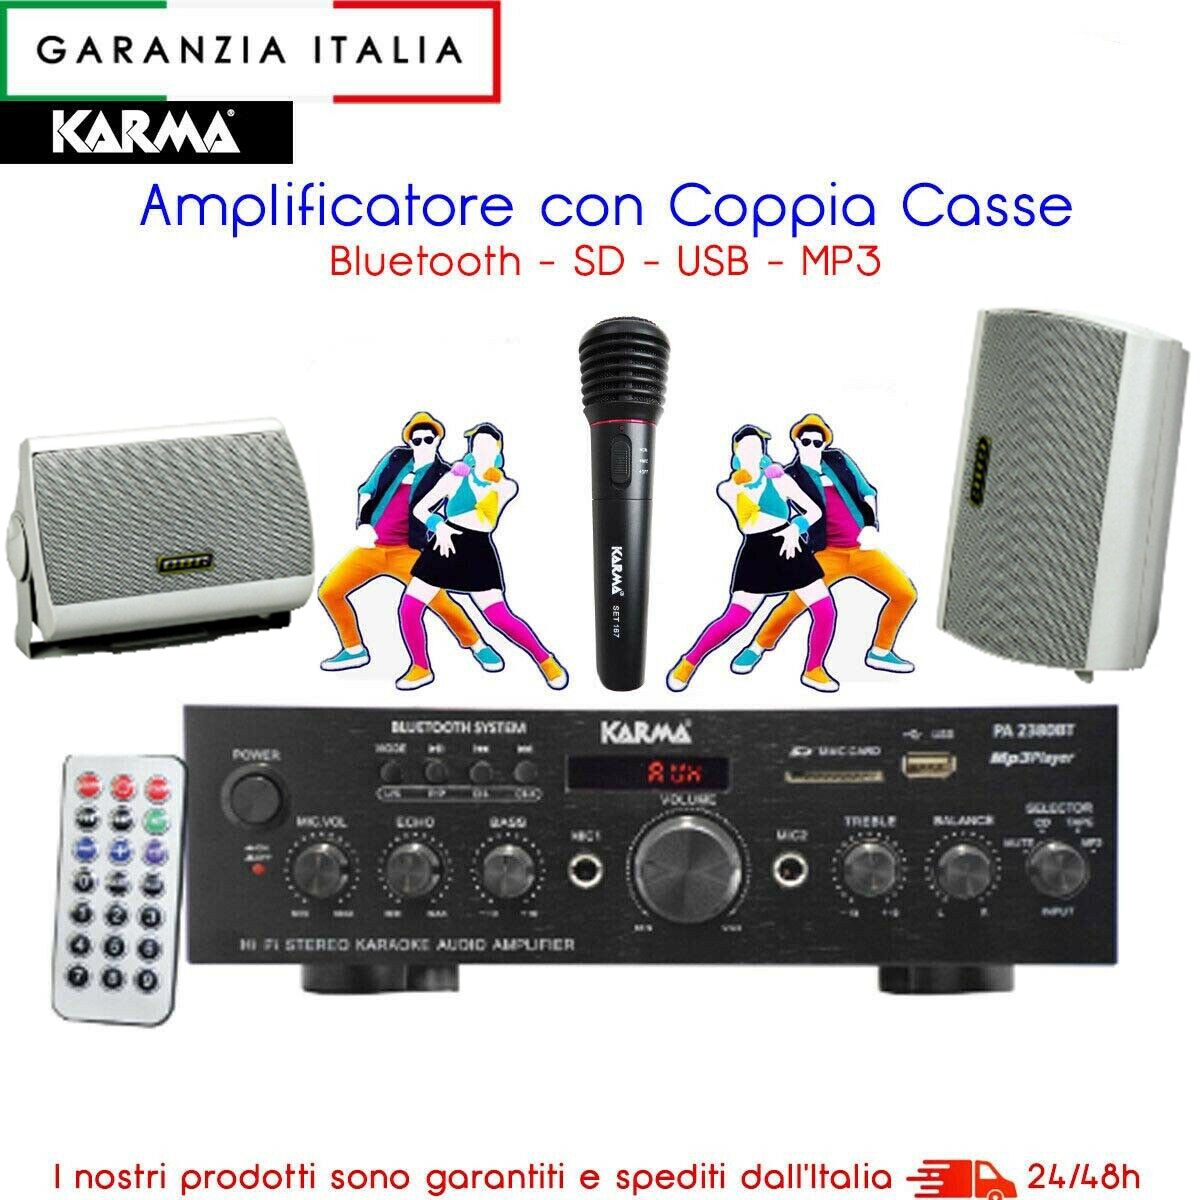 KIT PA2380BT amplificatore stereo con mp3 e bluetooth casse e microfono